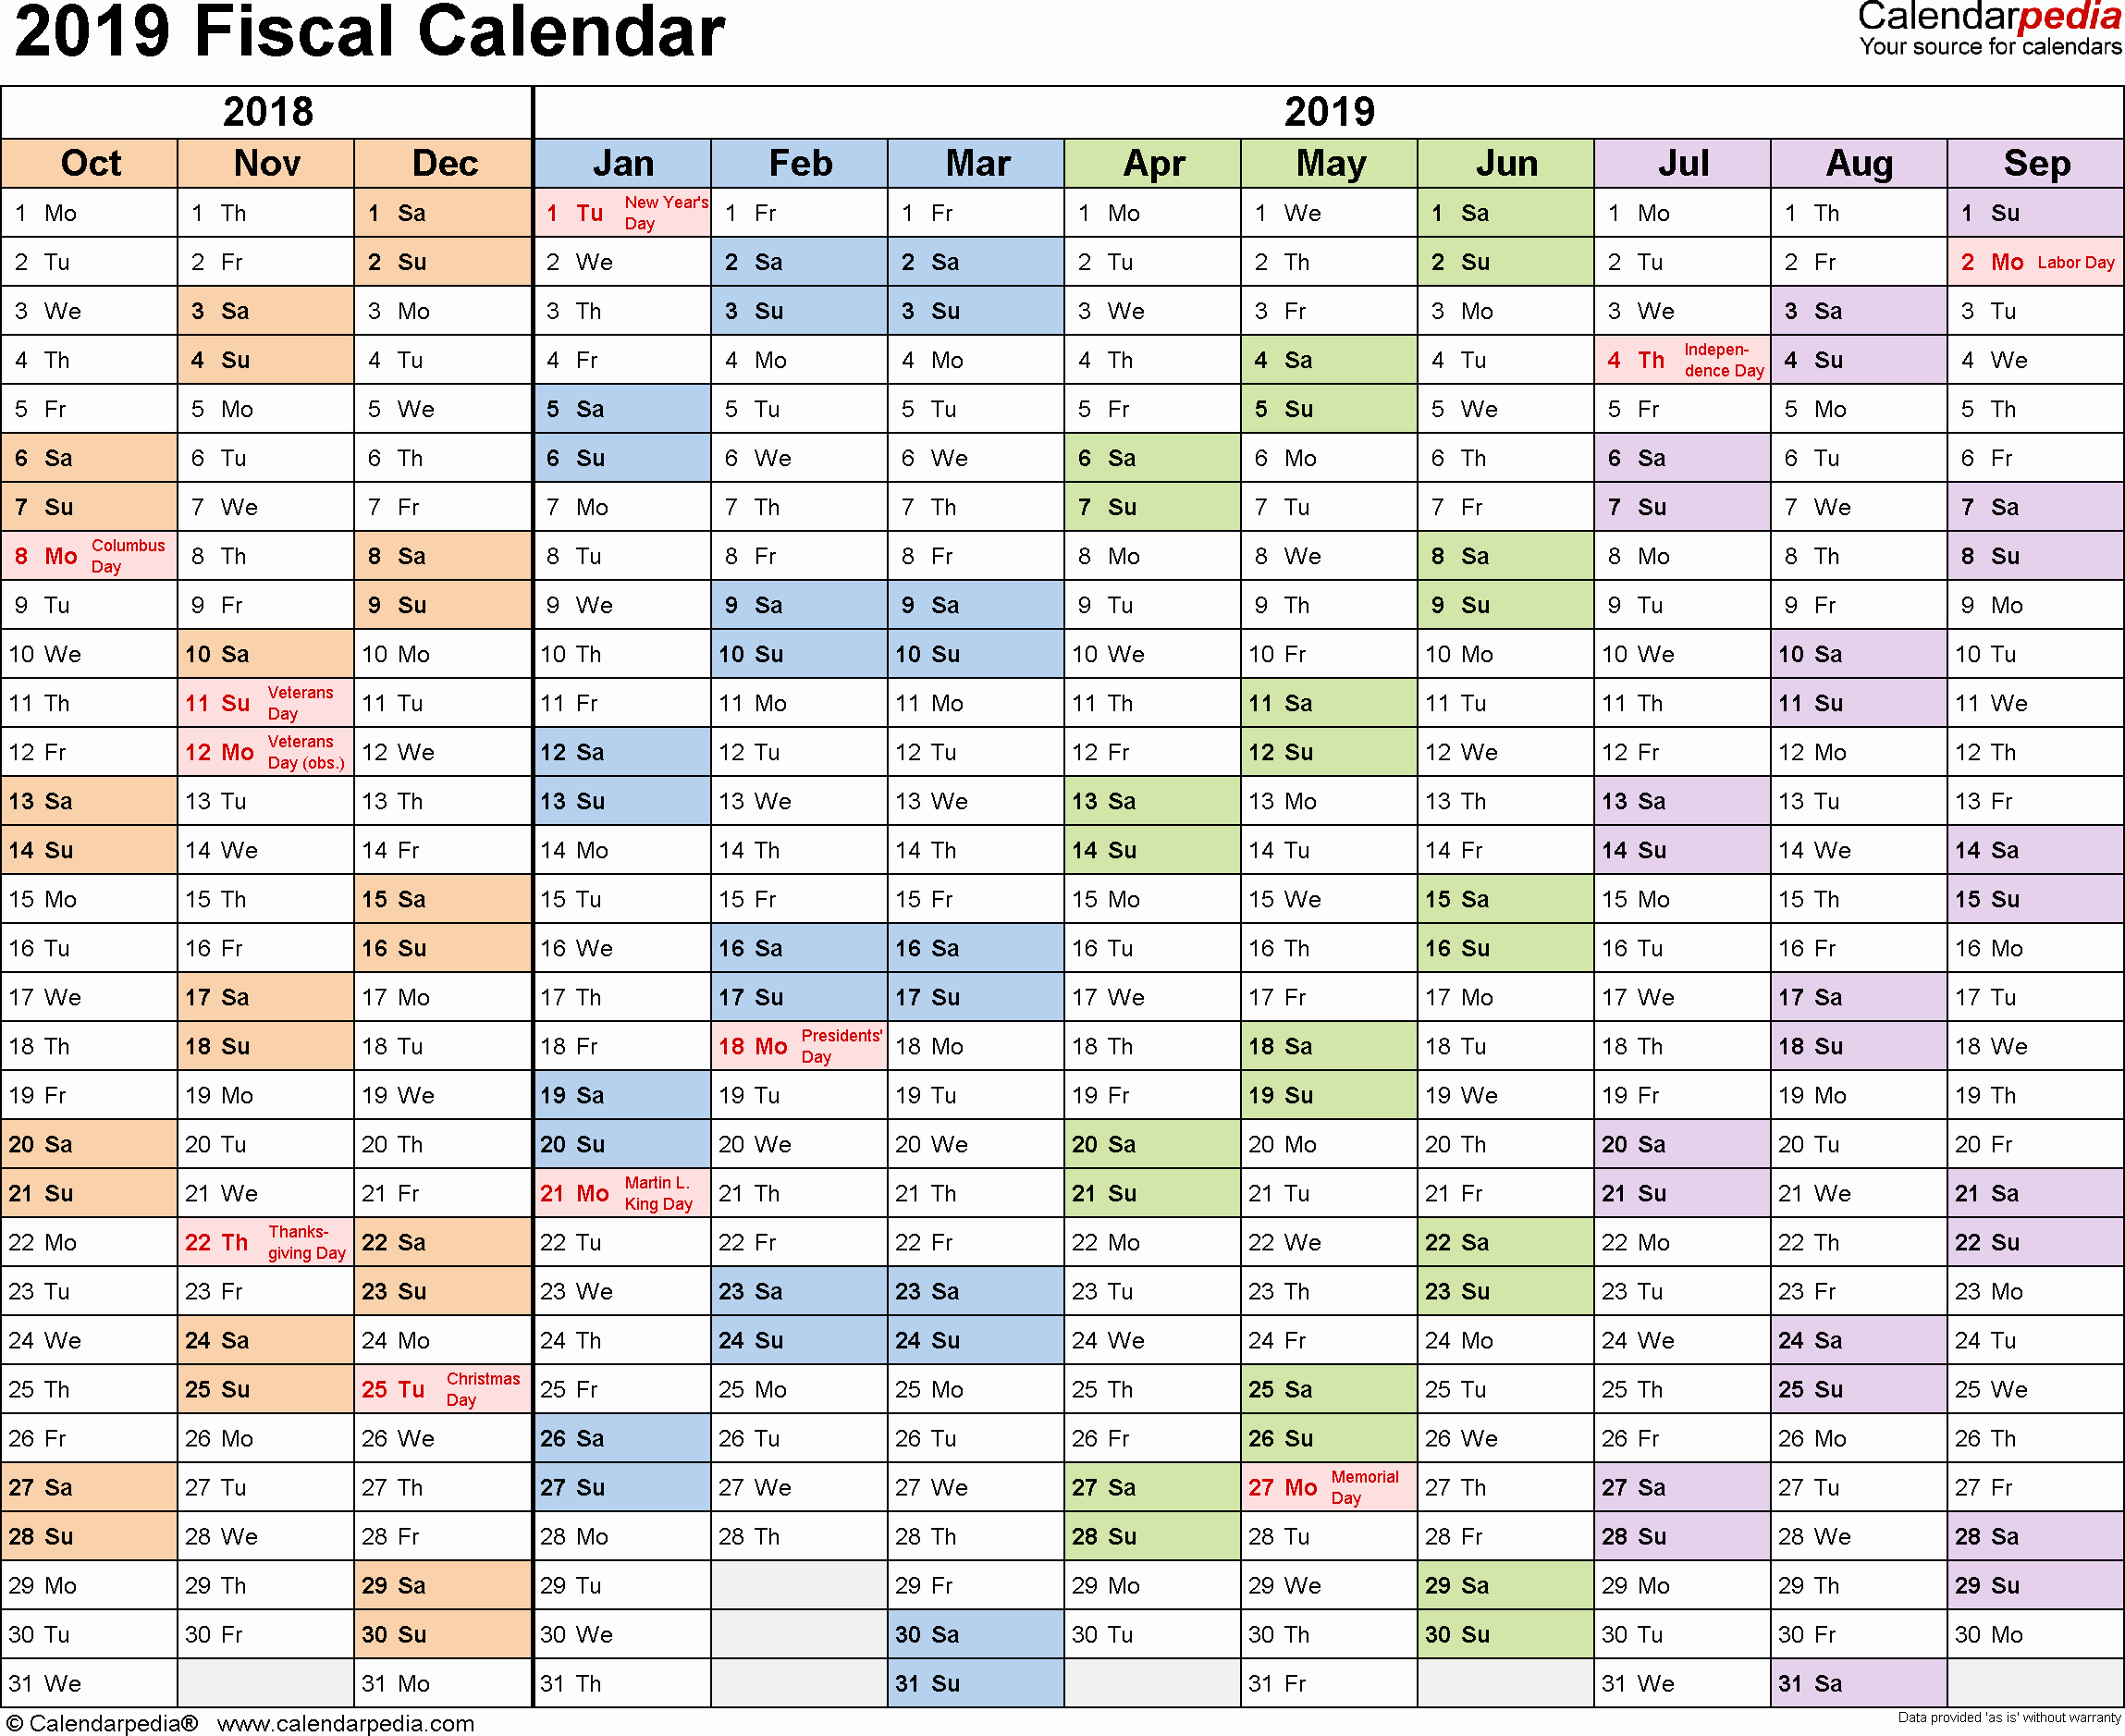 Payroll Calendar 2019 Template Unique 2019 Payroll Calendar Printable